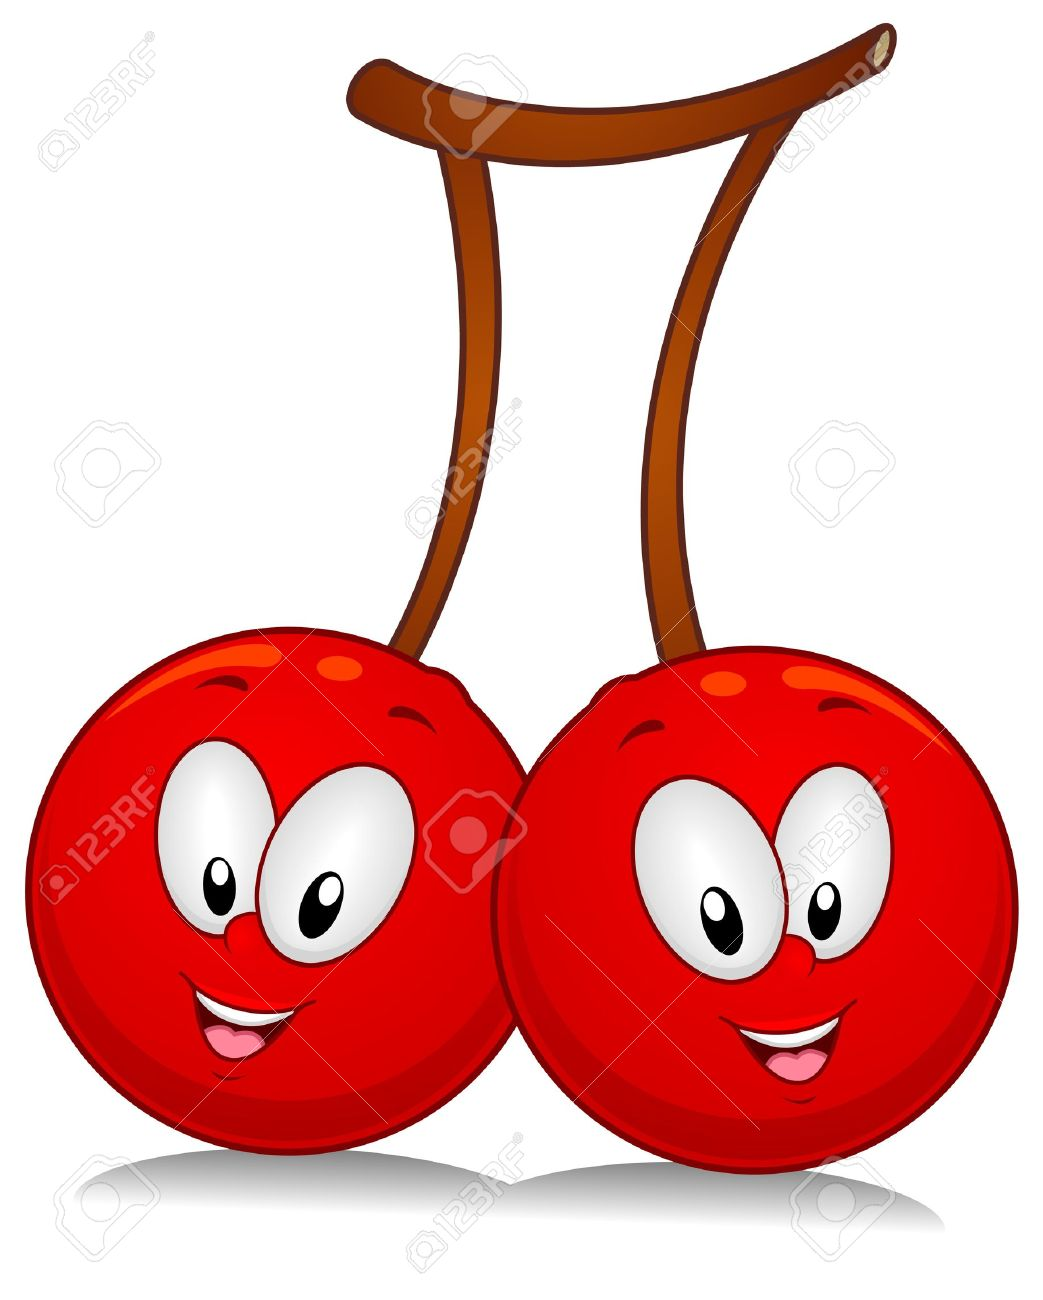 hight resolution of a pair of cherry characters poised sideside stock photo